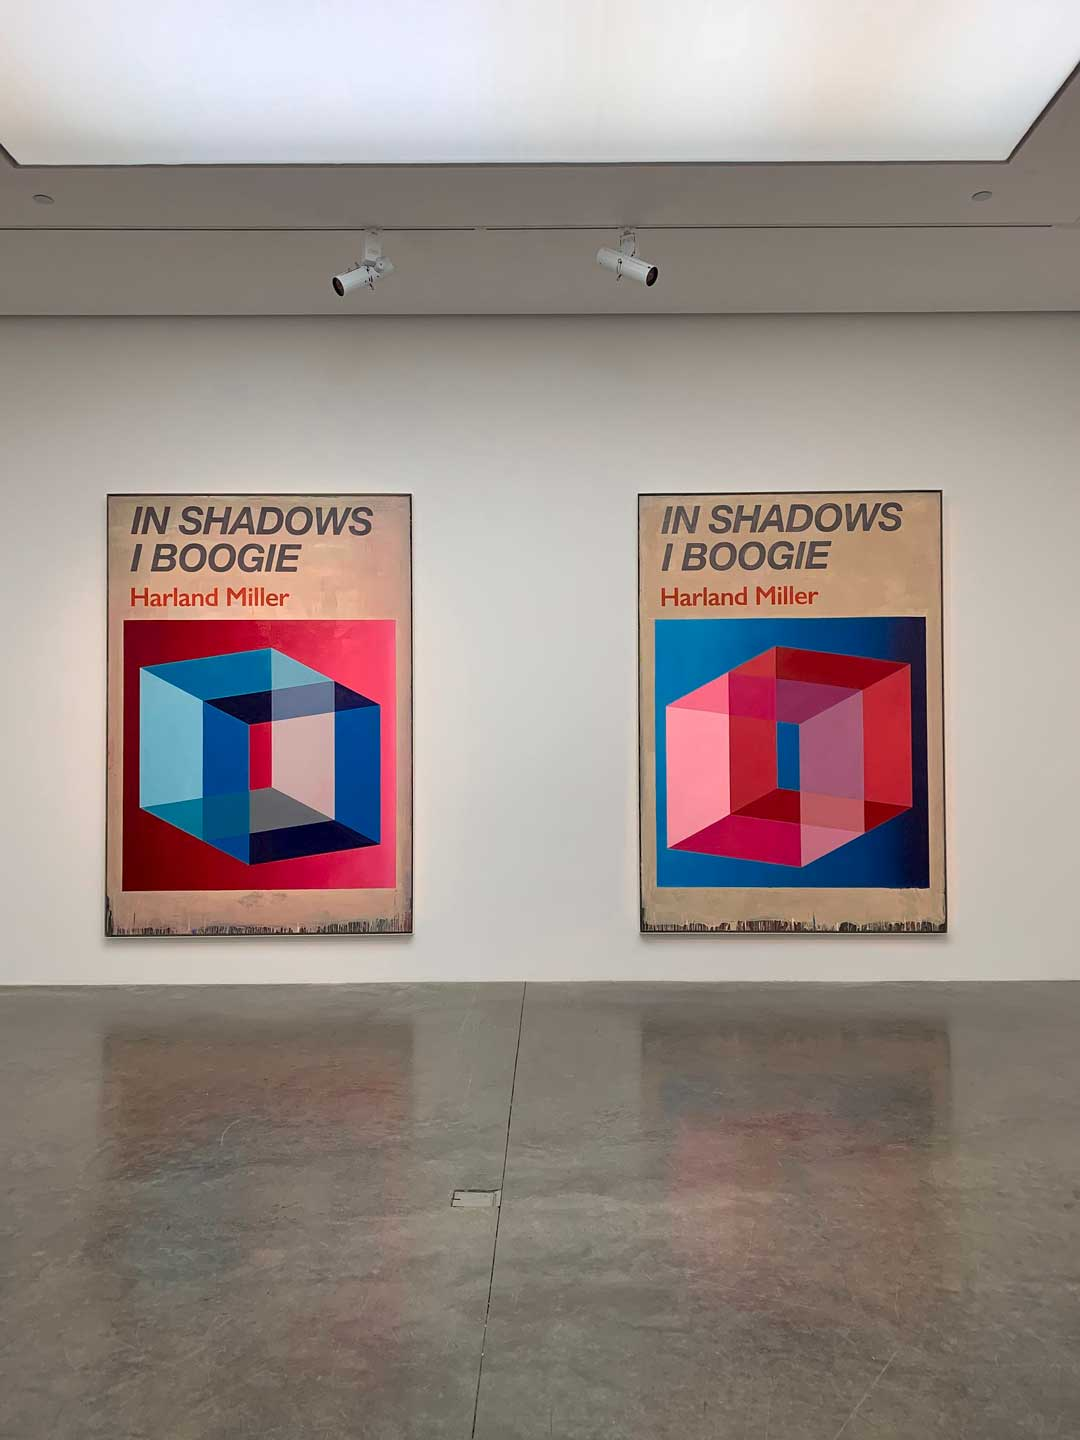 Harland Miller's paintings of In Shadows I Boogie at White Cube